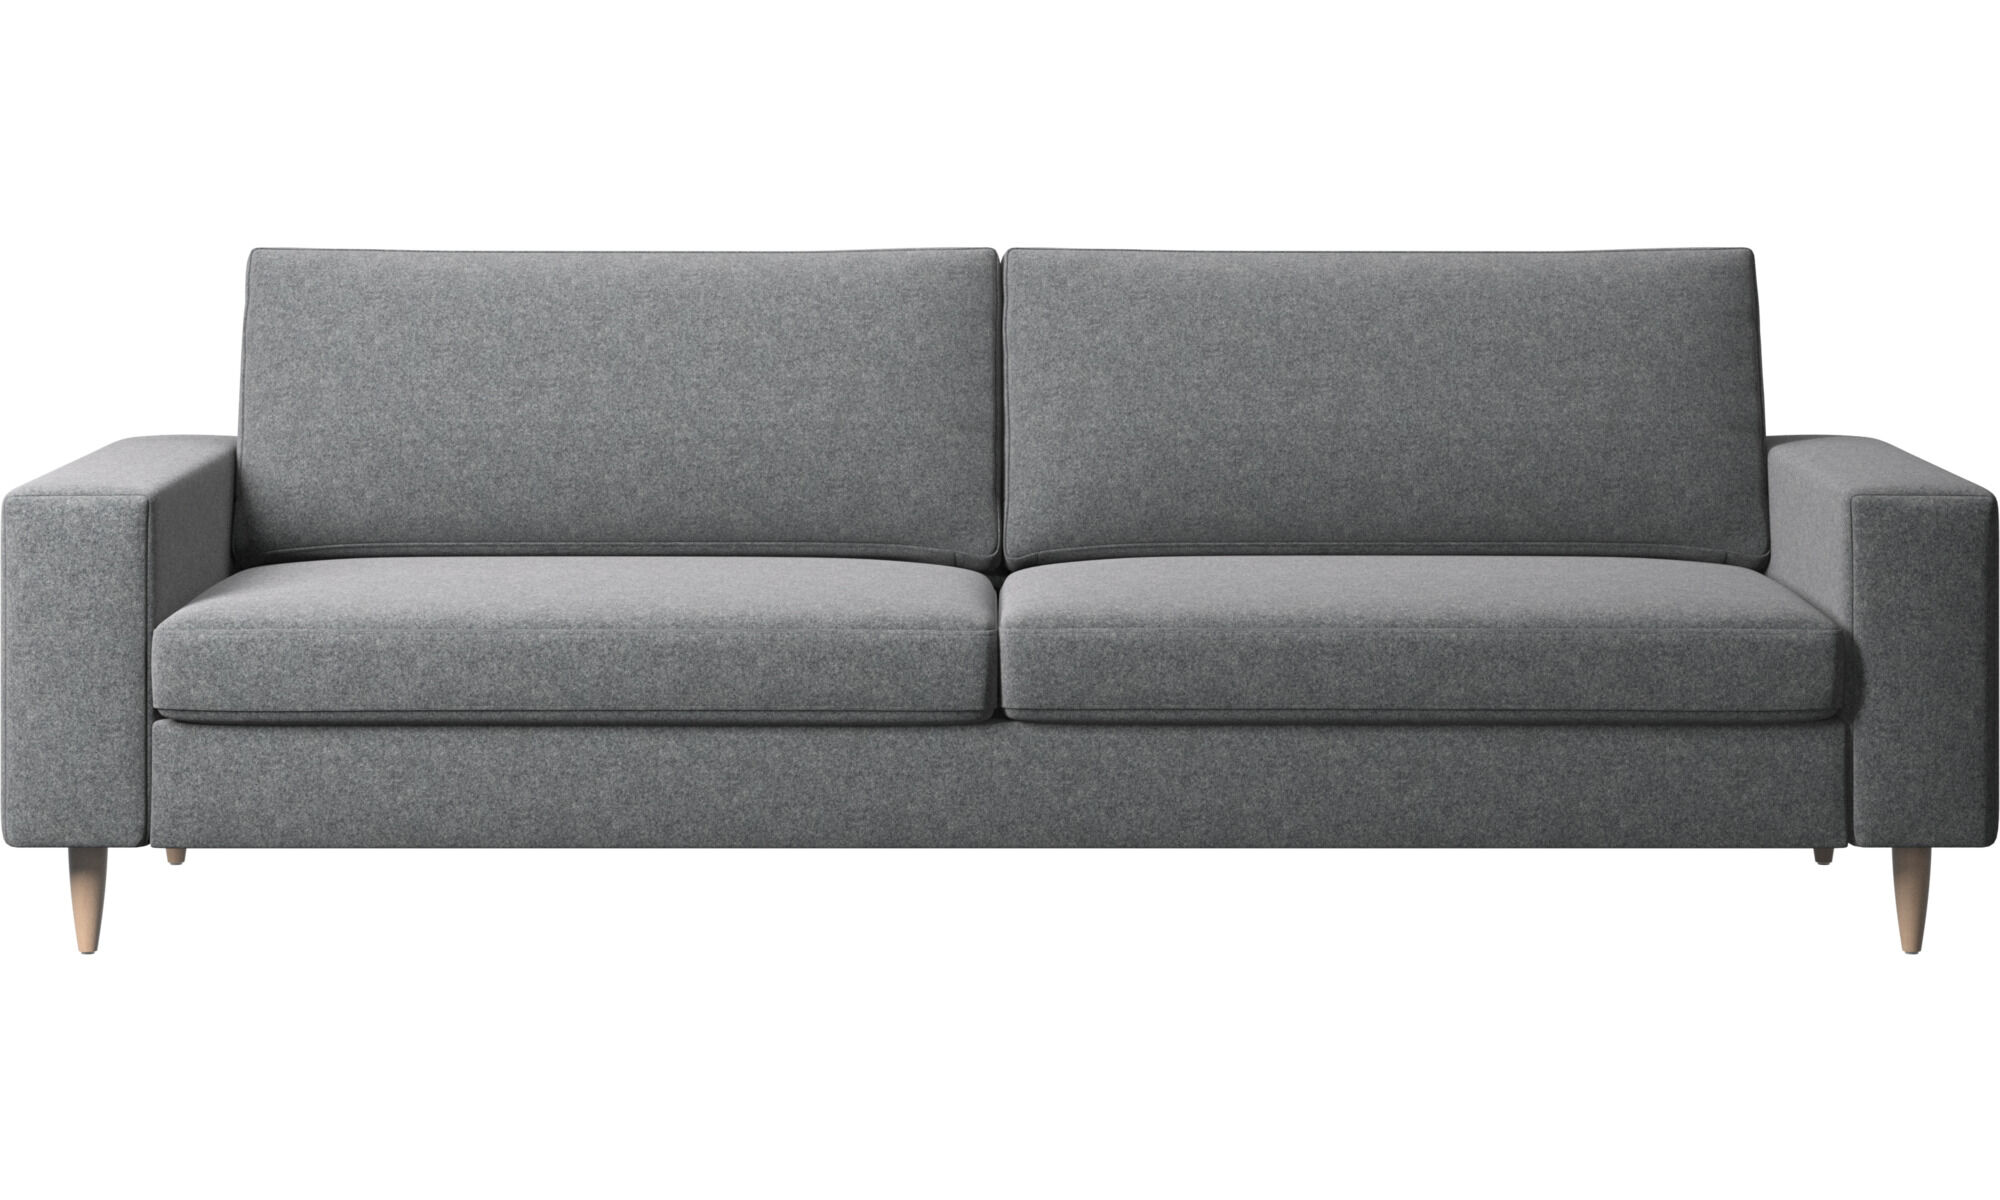 Exceptionnel 3 Seater Sofas   Indivi 2 Sofa   Gray   Fabric ...